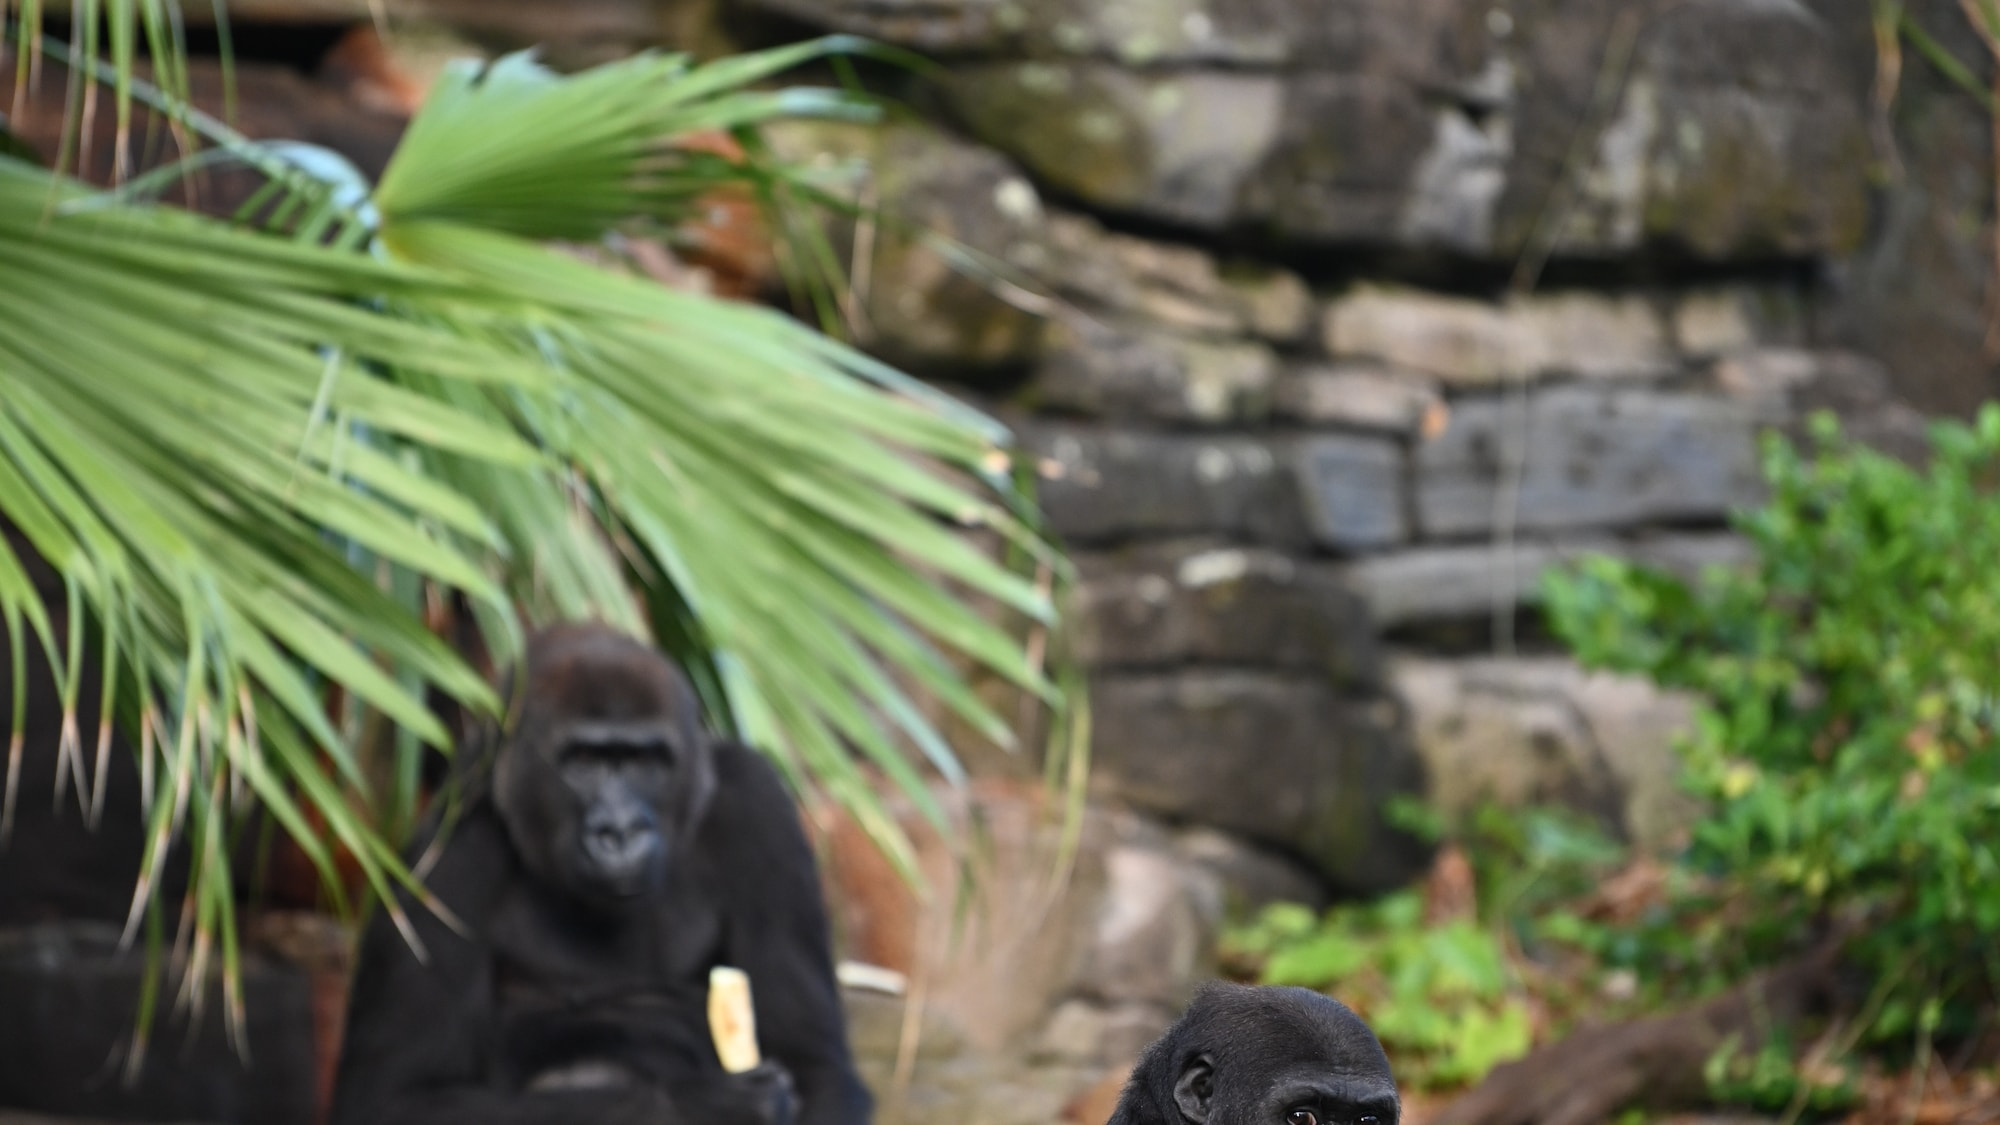 Lilly and Cory the Gorillas eating. (National Geographic/Gene Page)